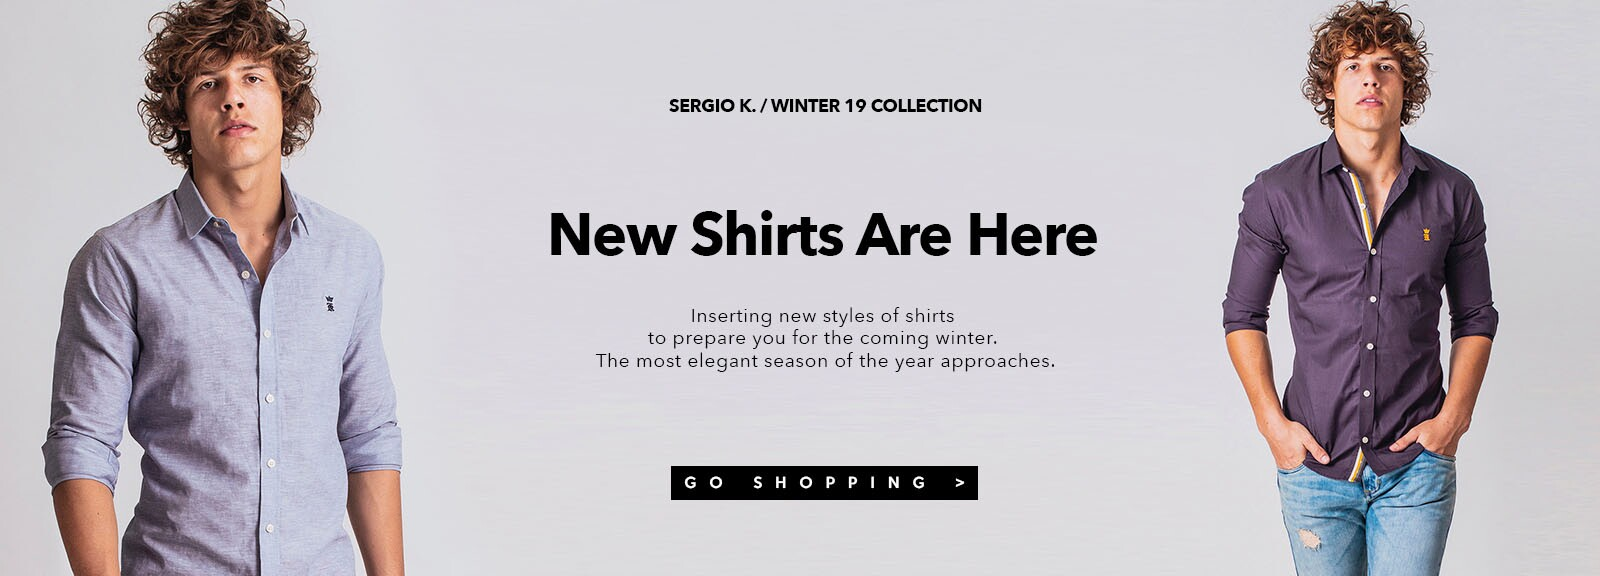 Shirts Winter 19